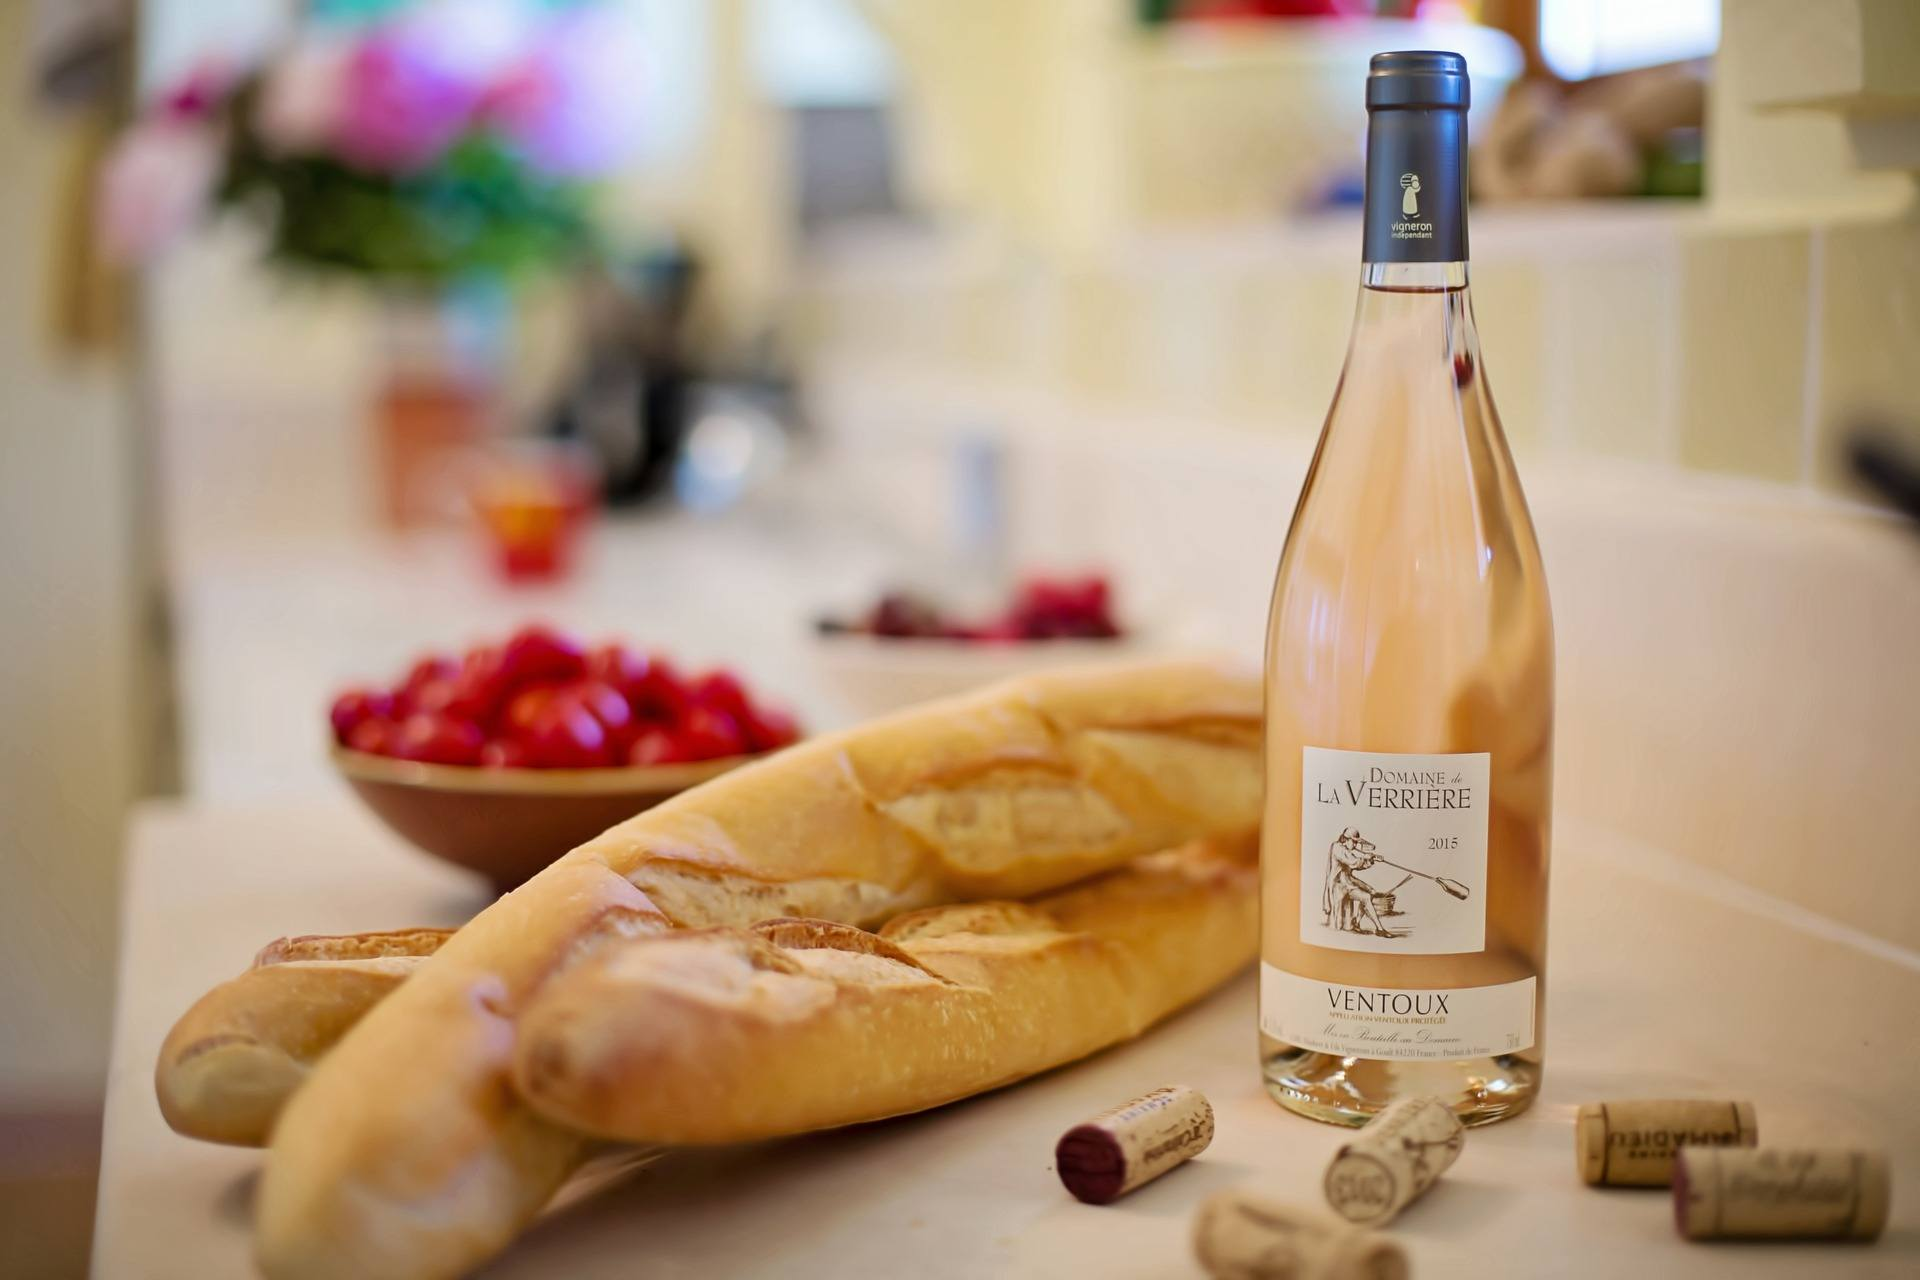 Baguette and wine